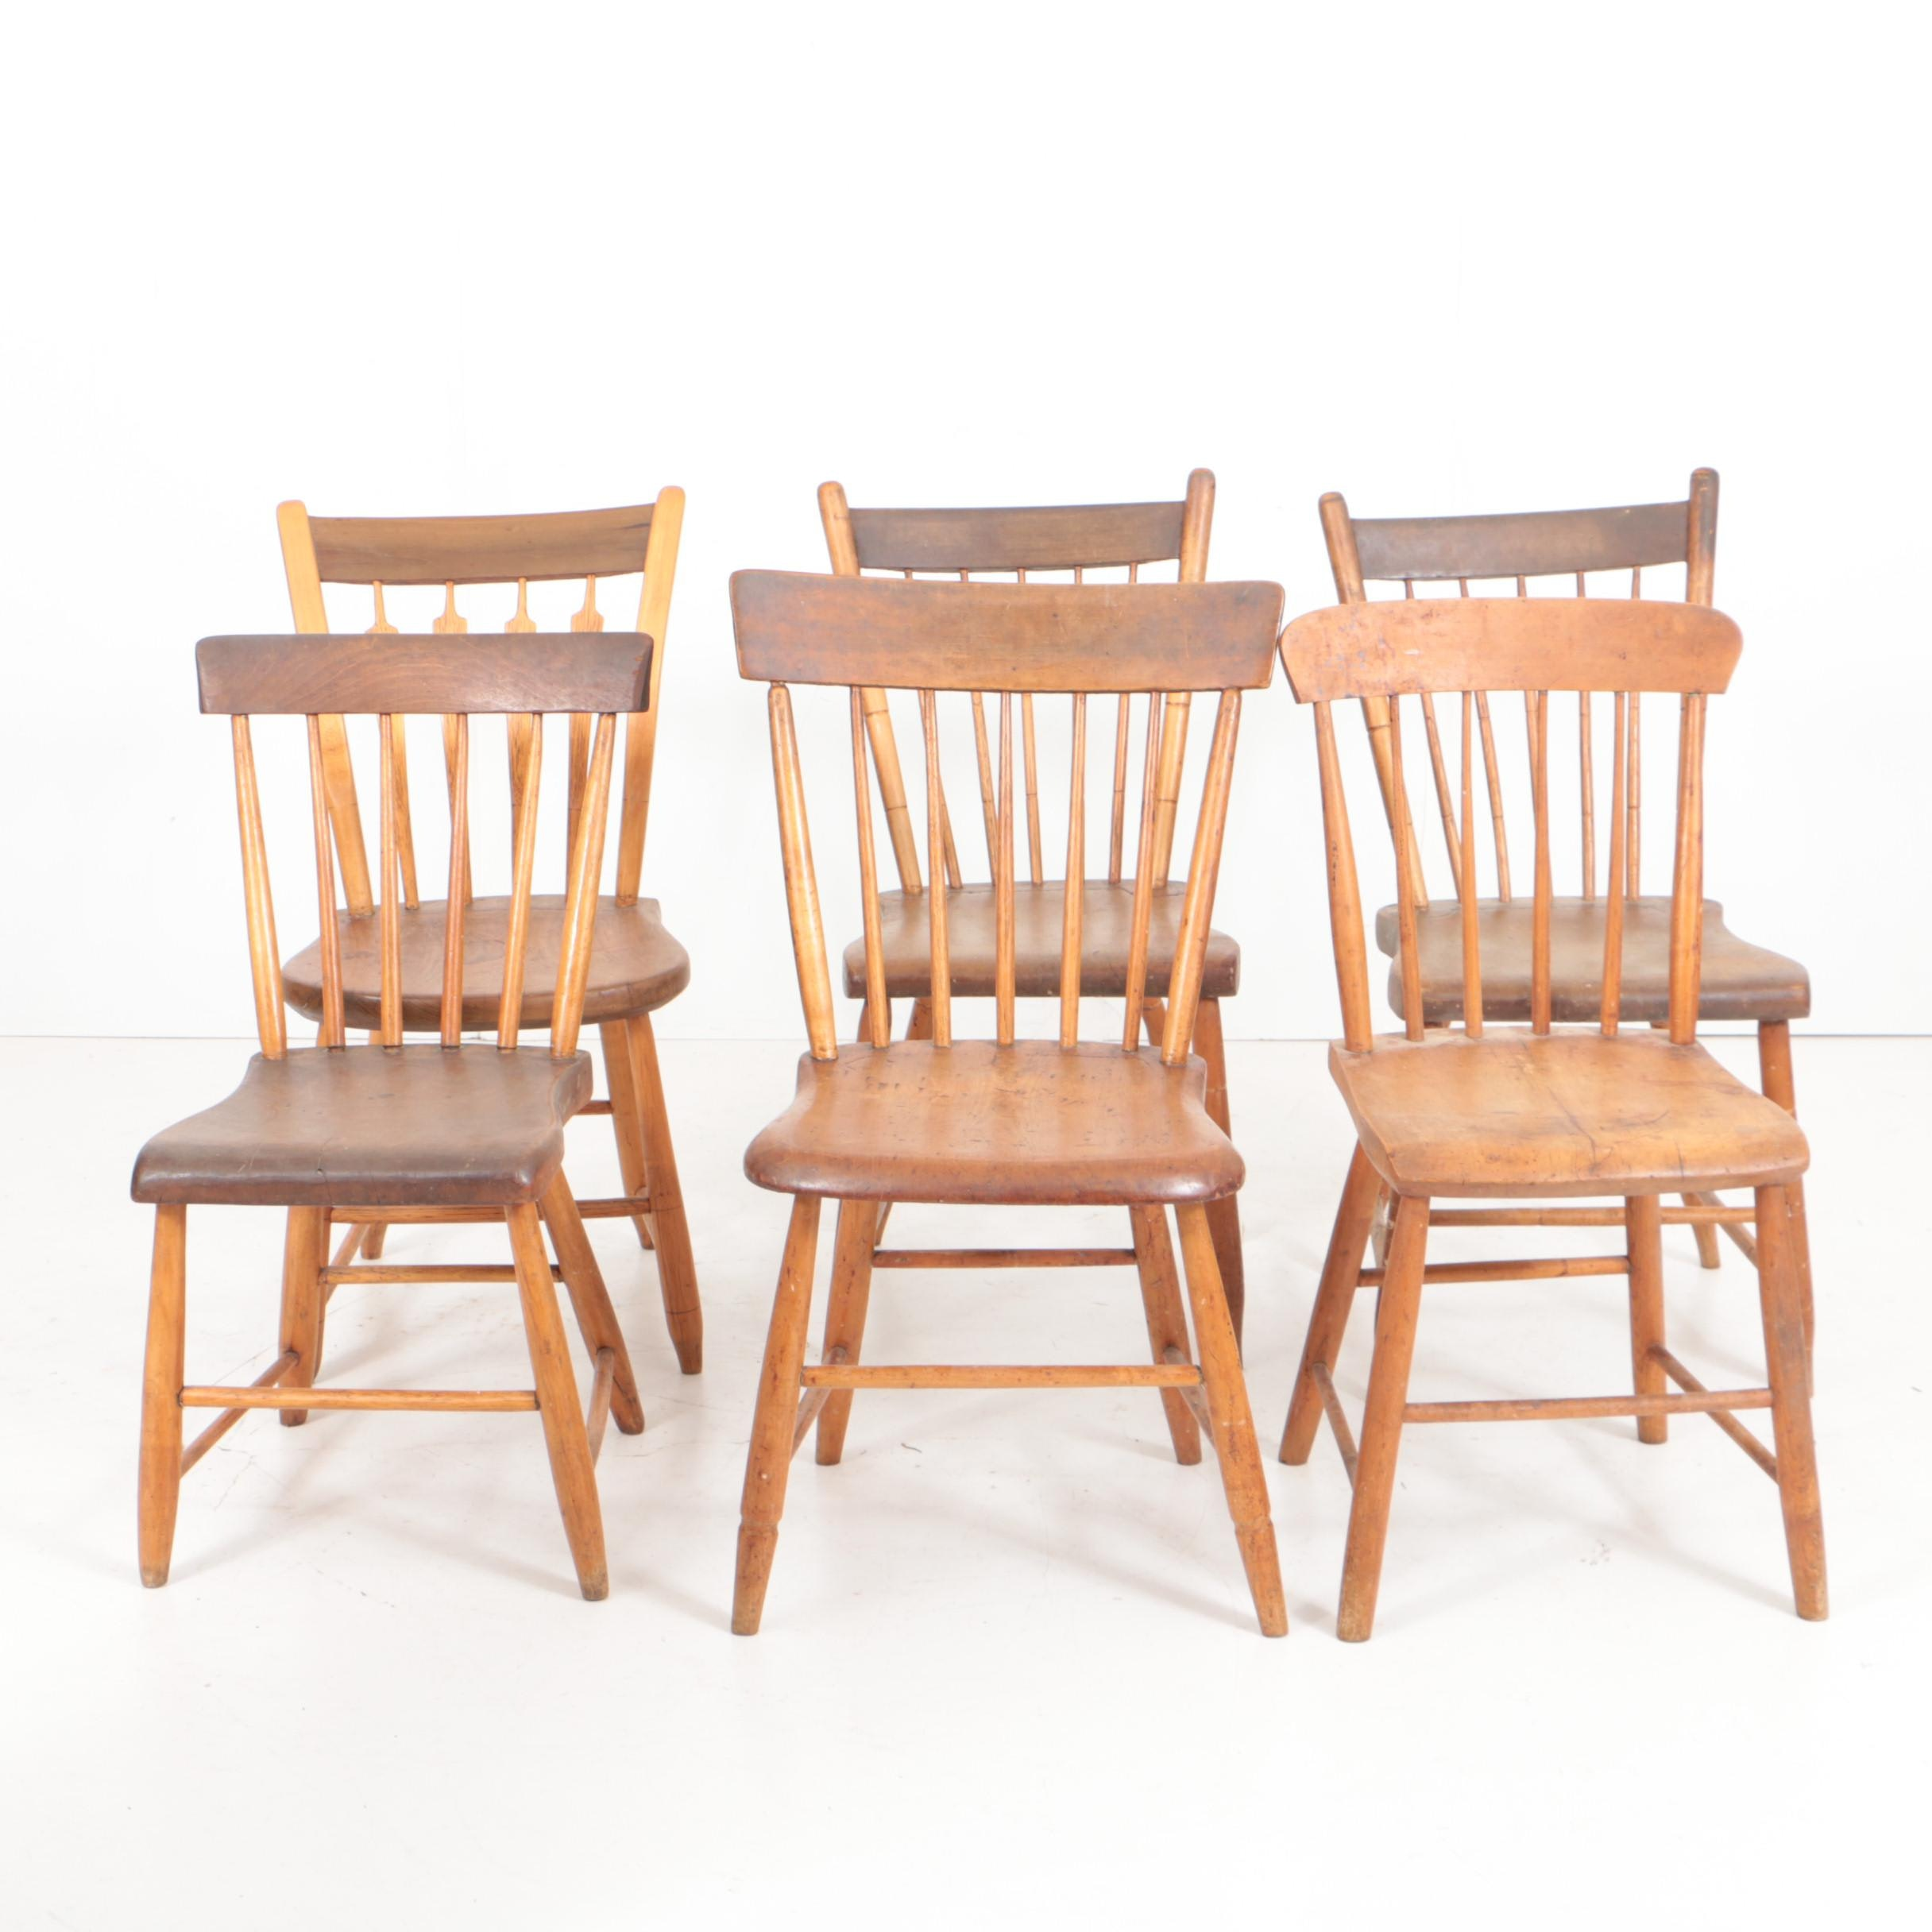 Antique Spindle-Back Side Chairs